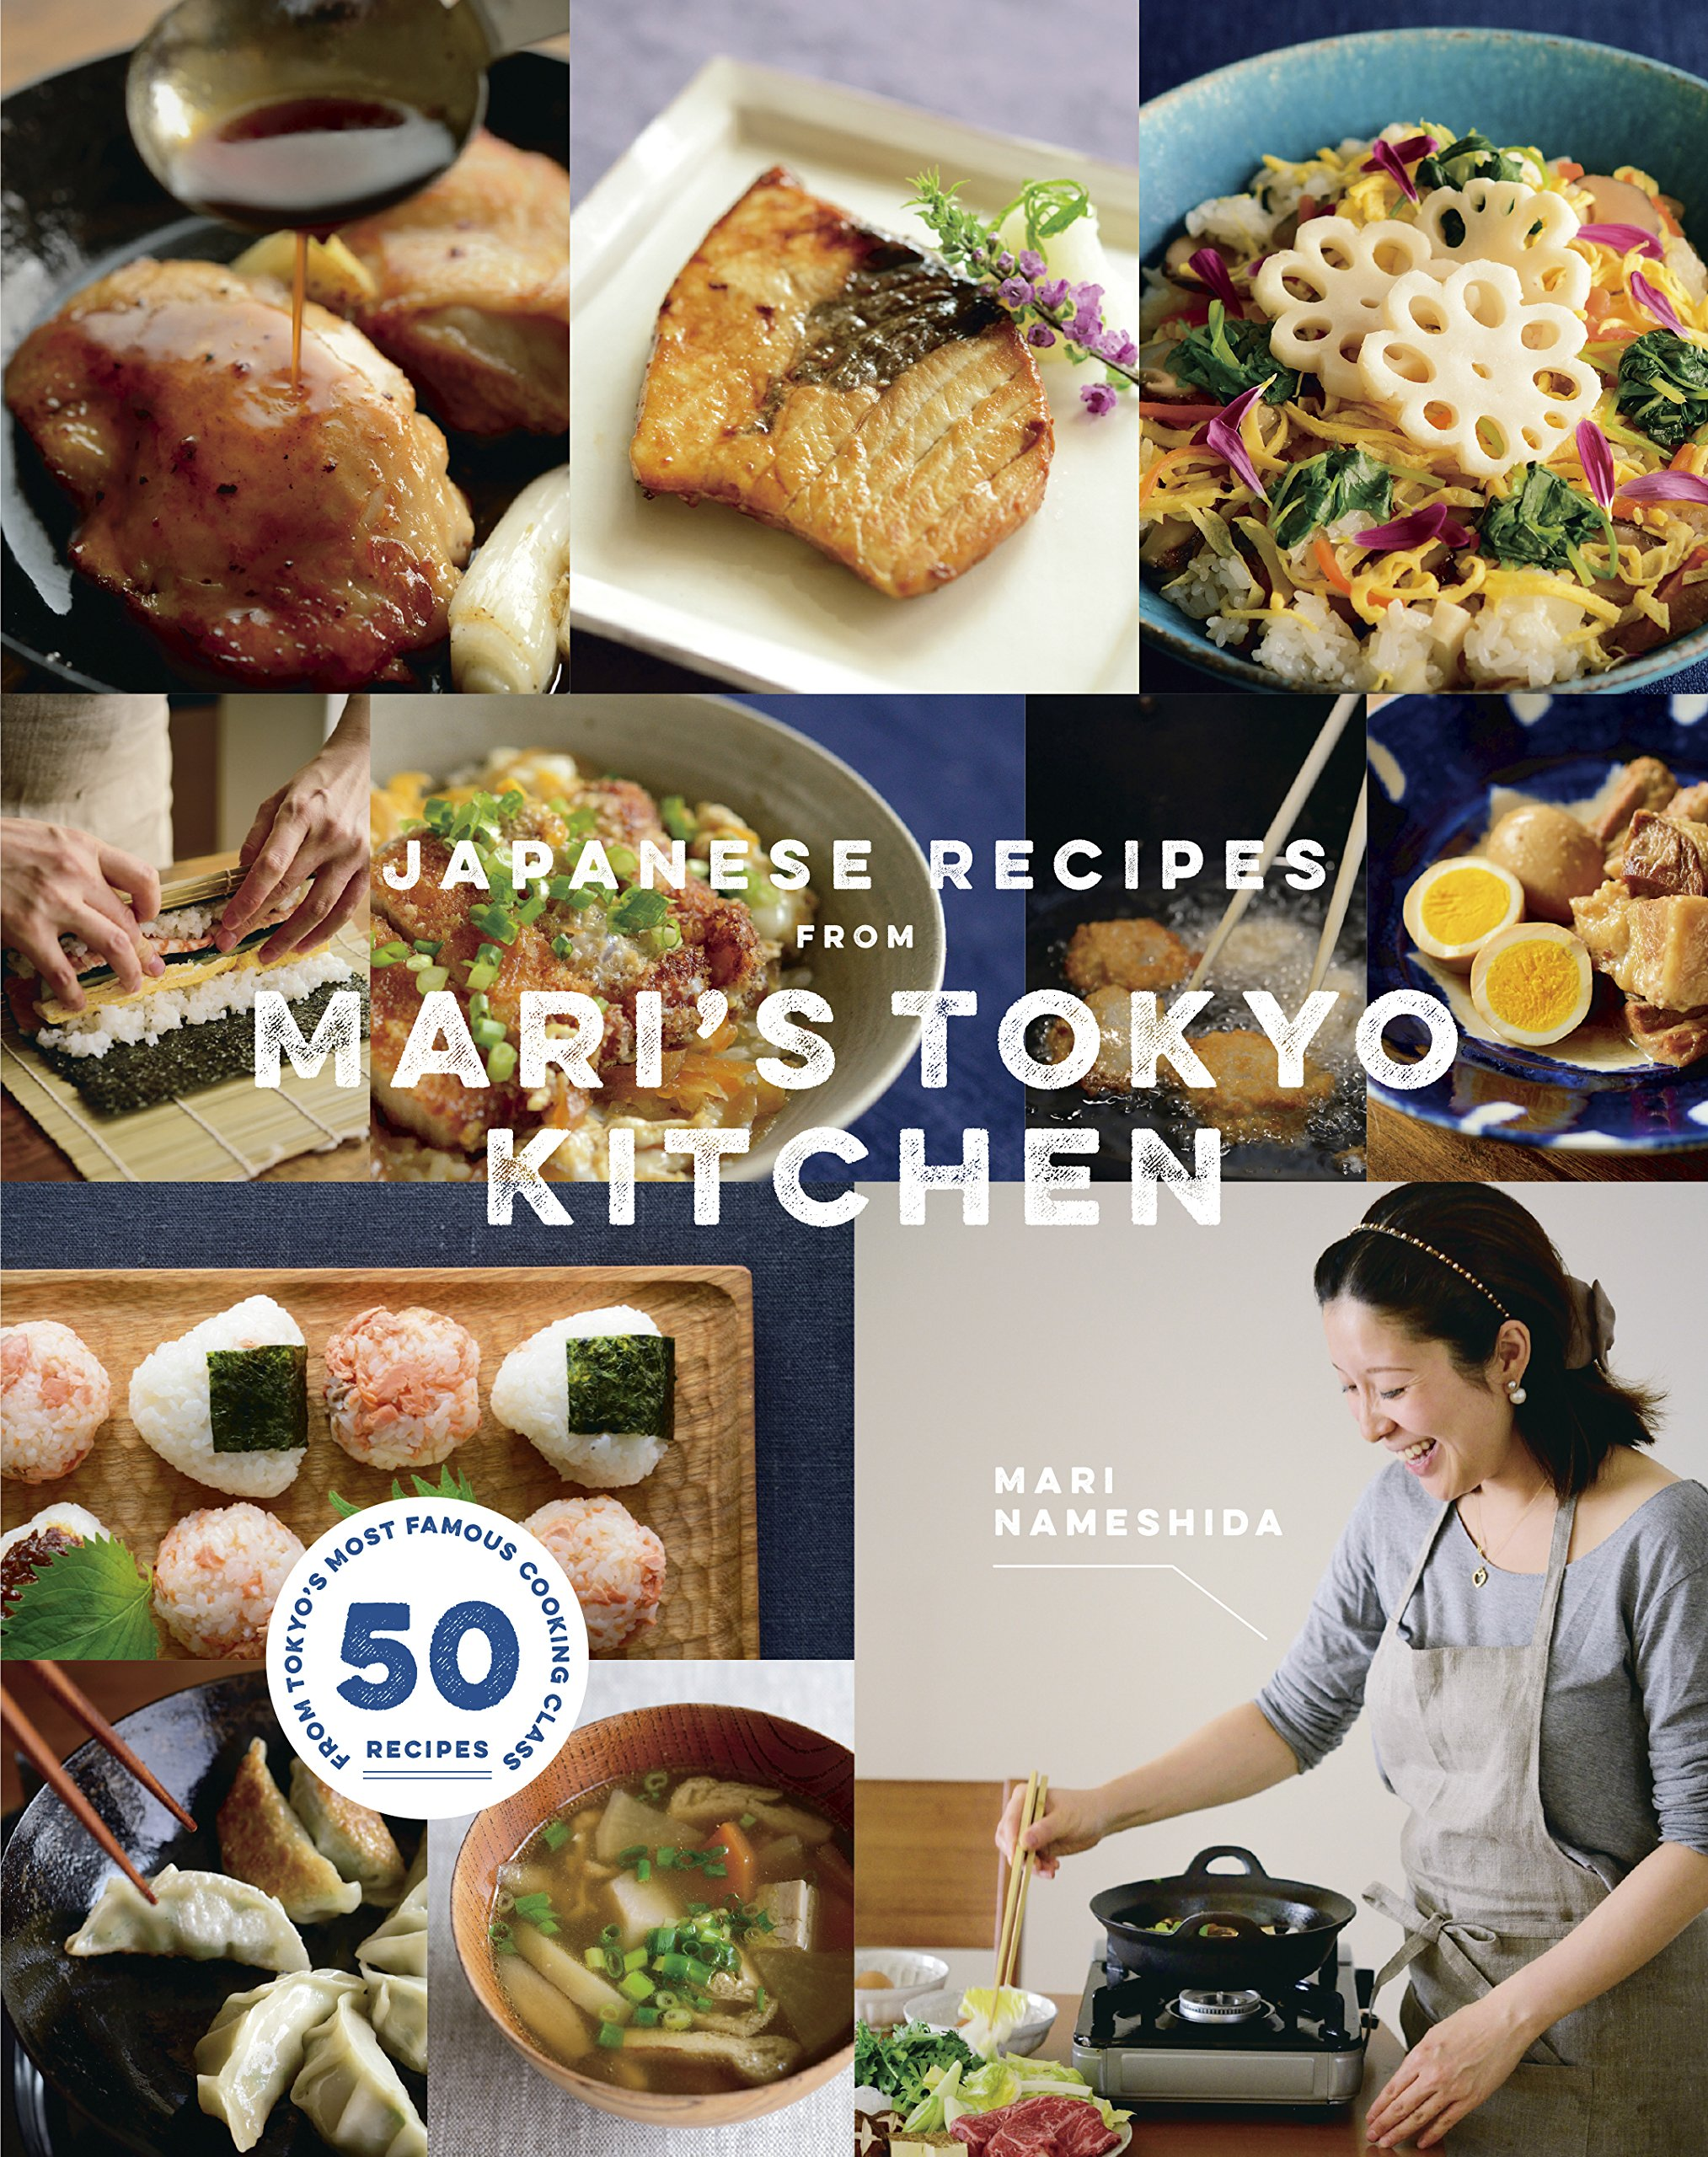 Japanese recipes from maris tokyo kitchen mari nameshida japanese recipes from maris tokyo kitchen mari nameshida 9784835628448 amazon books forumfinder Image collections